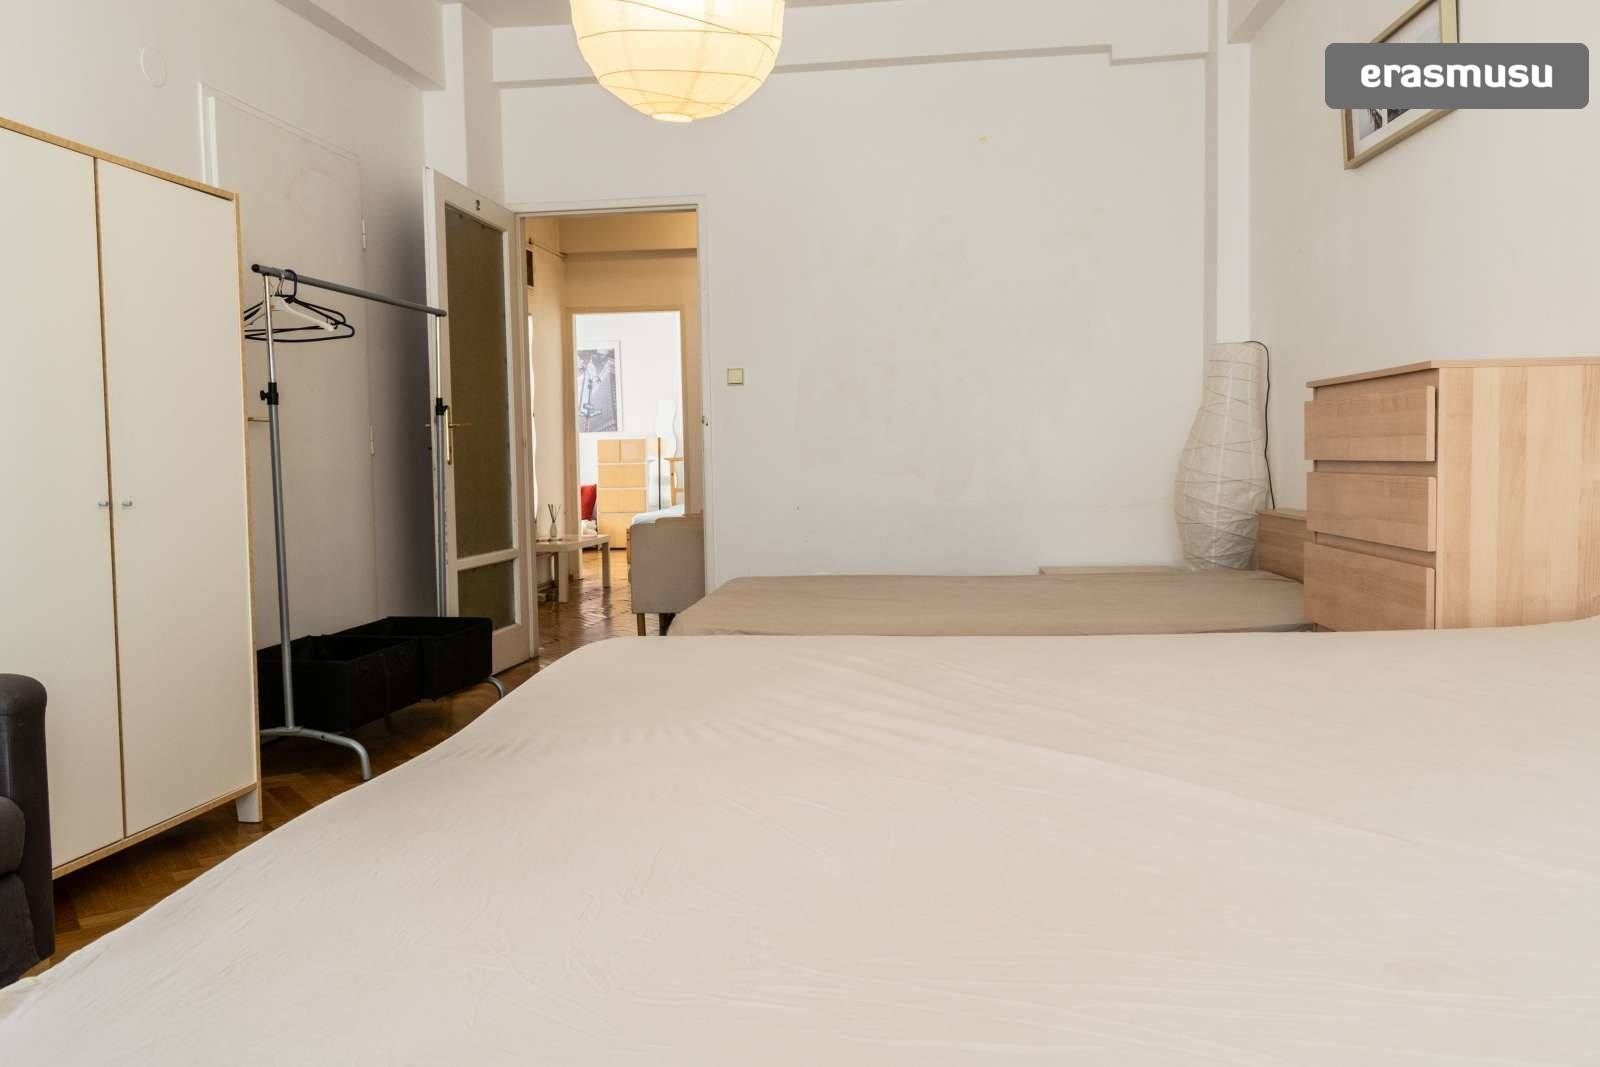 Single Bed In Rooms For Rent In Charming 3 Bedroom Apartment In Old Town Room For Rent Prague